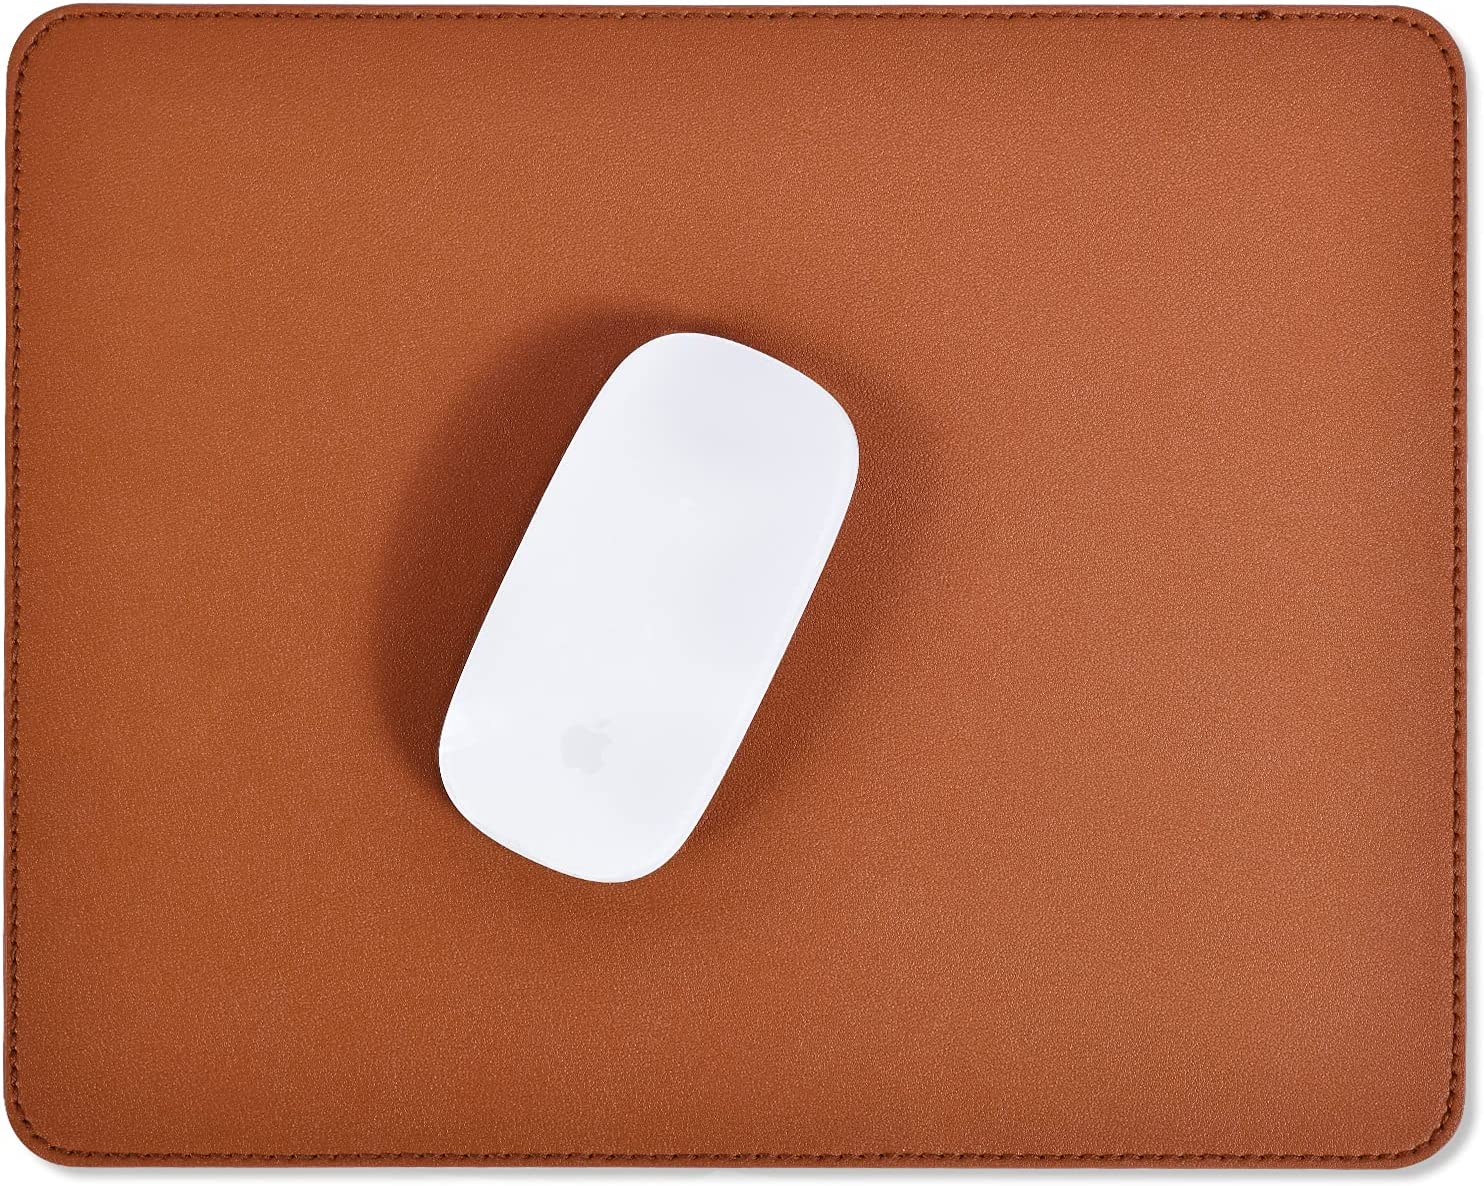 Rectangle Mouse Pad Brown Leather Max Max 52% OFF 81% OFF Rubb Anti-Slip with